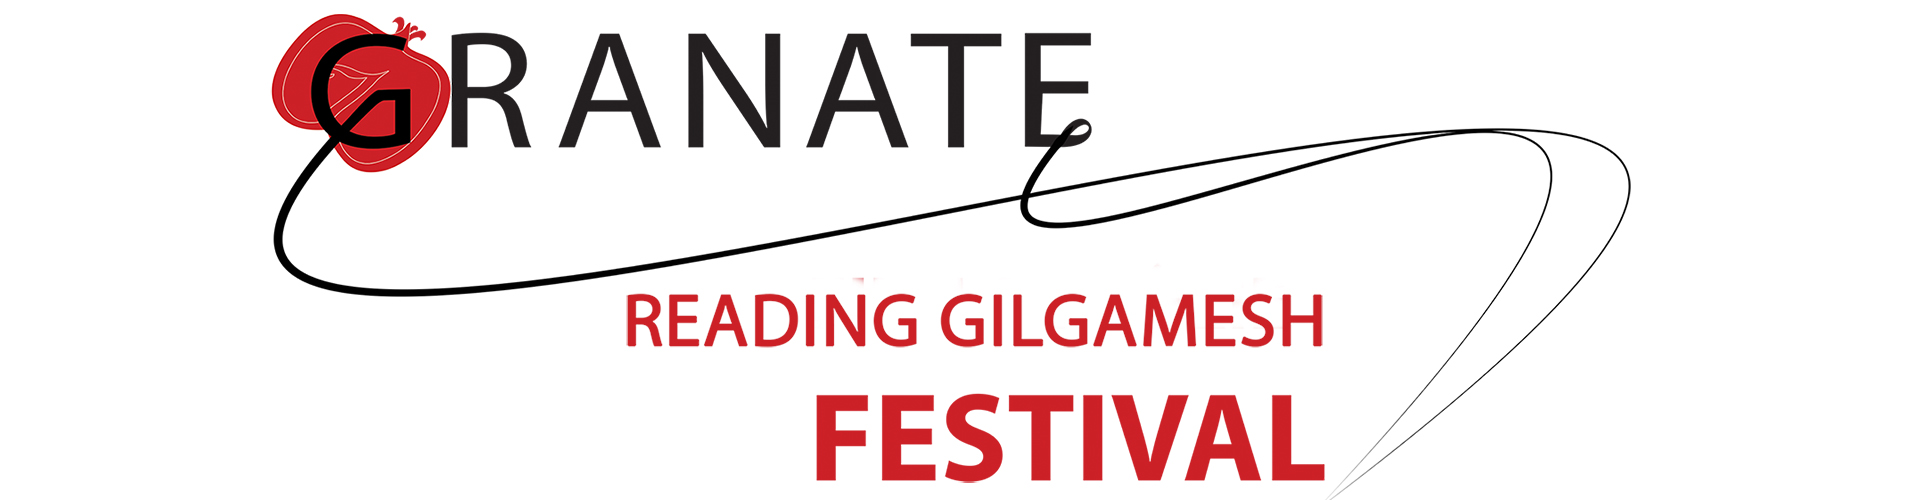 Granate Festival | Reading Gilgamesh